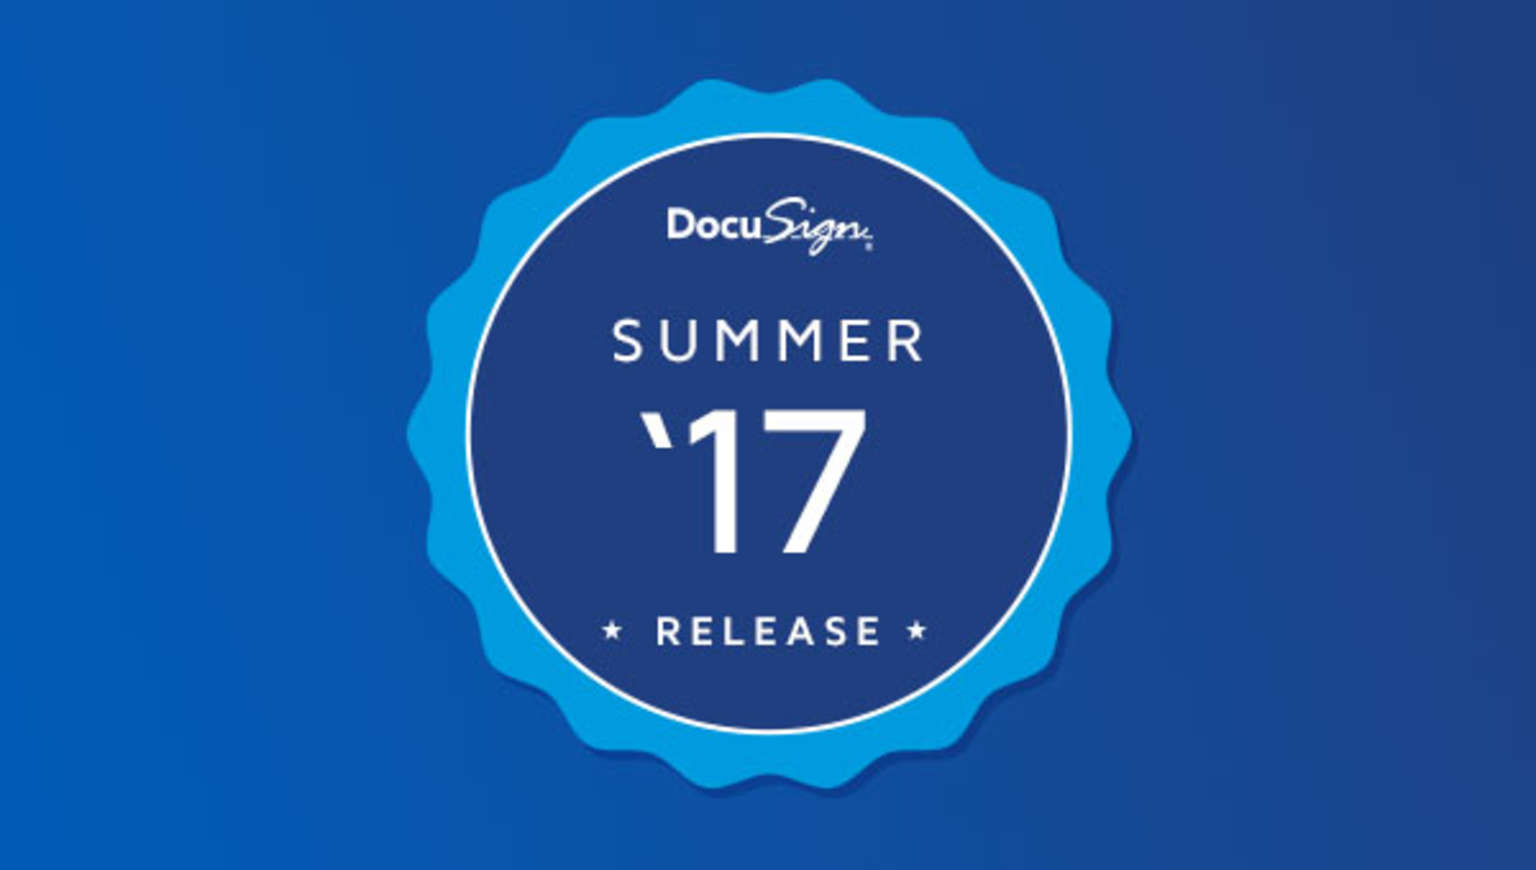 Learn about DocuSign's Summer '17 Release features